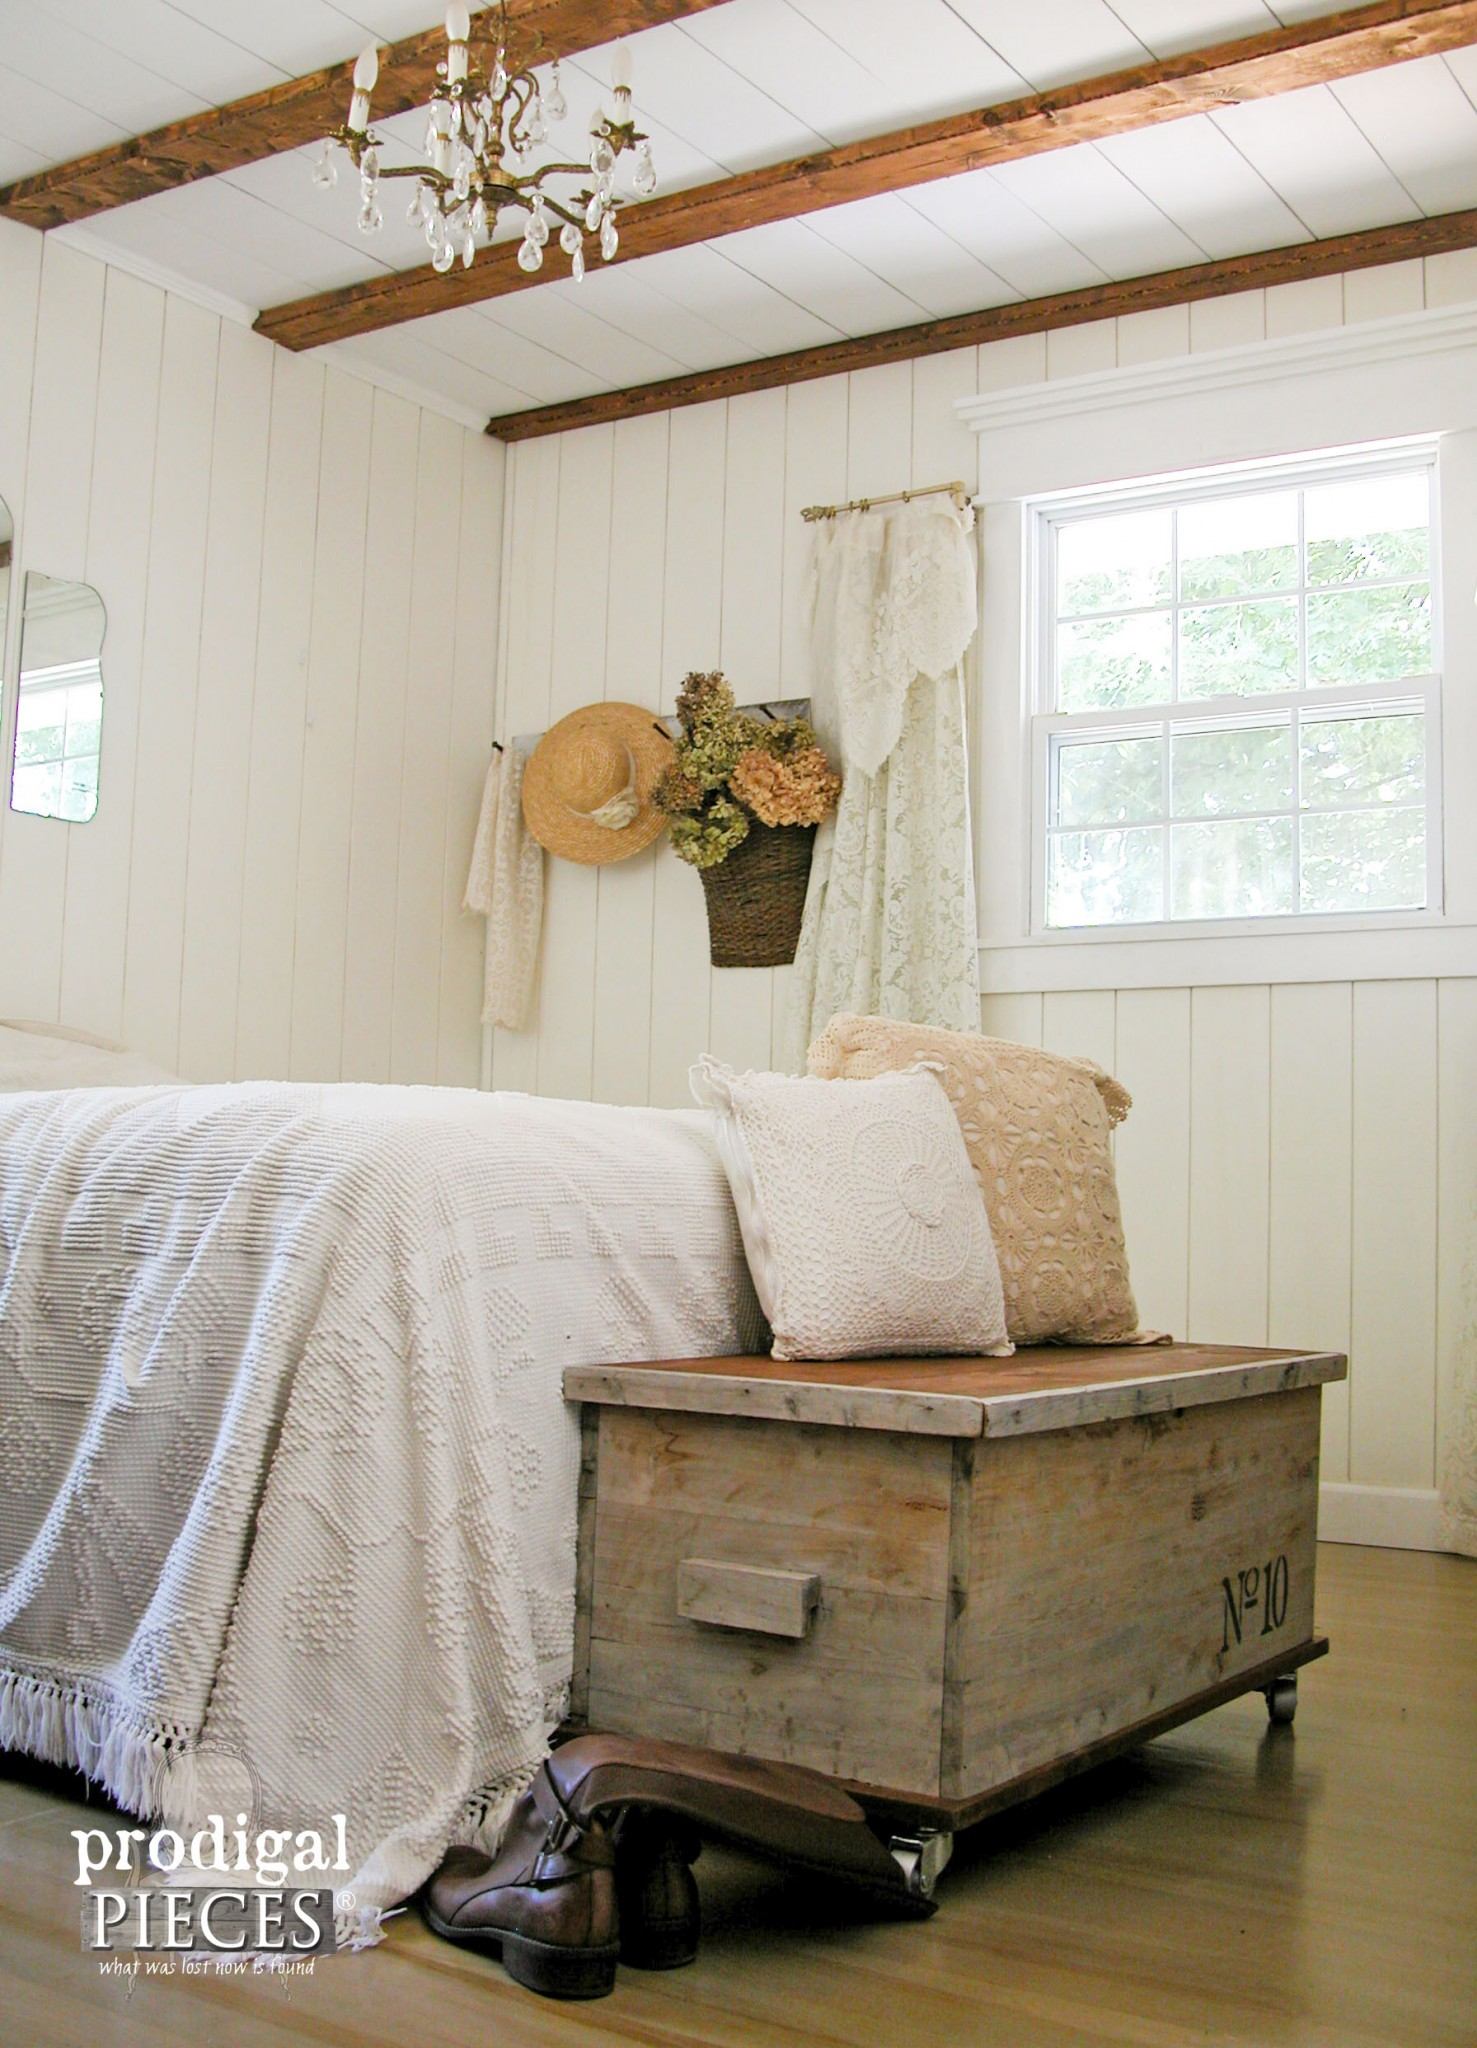 Farmhouse Chic Bedroom With Industrial Style Cedar Chest Made New By Prodigal Pieces